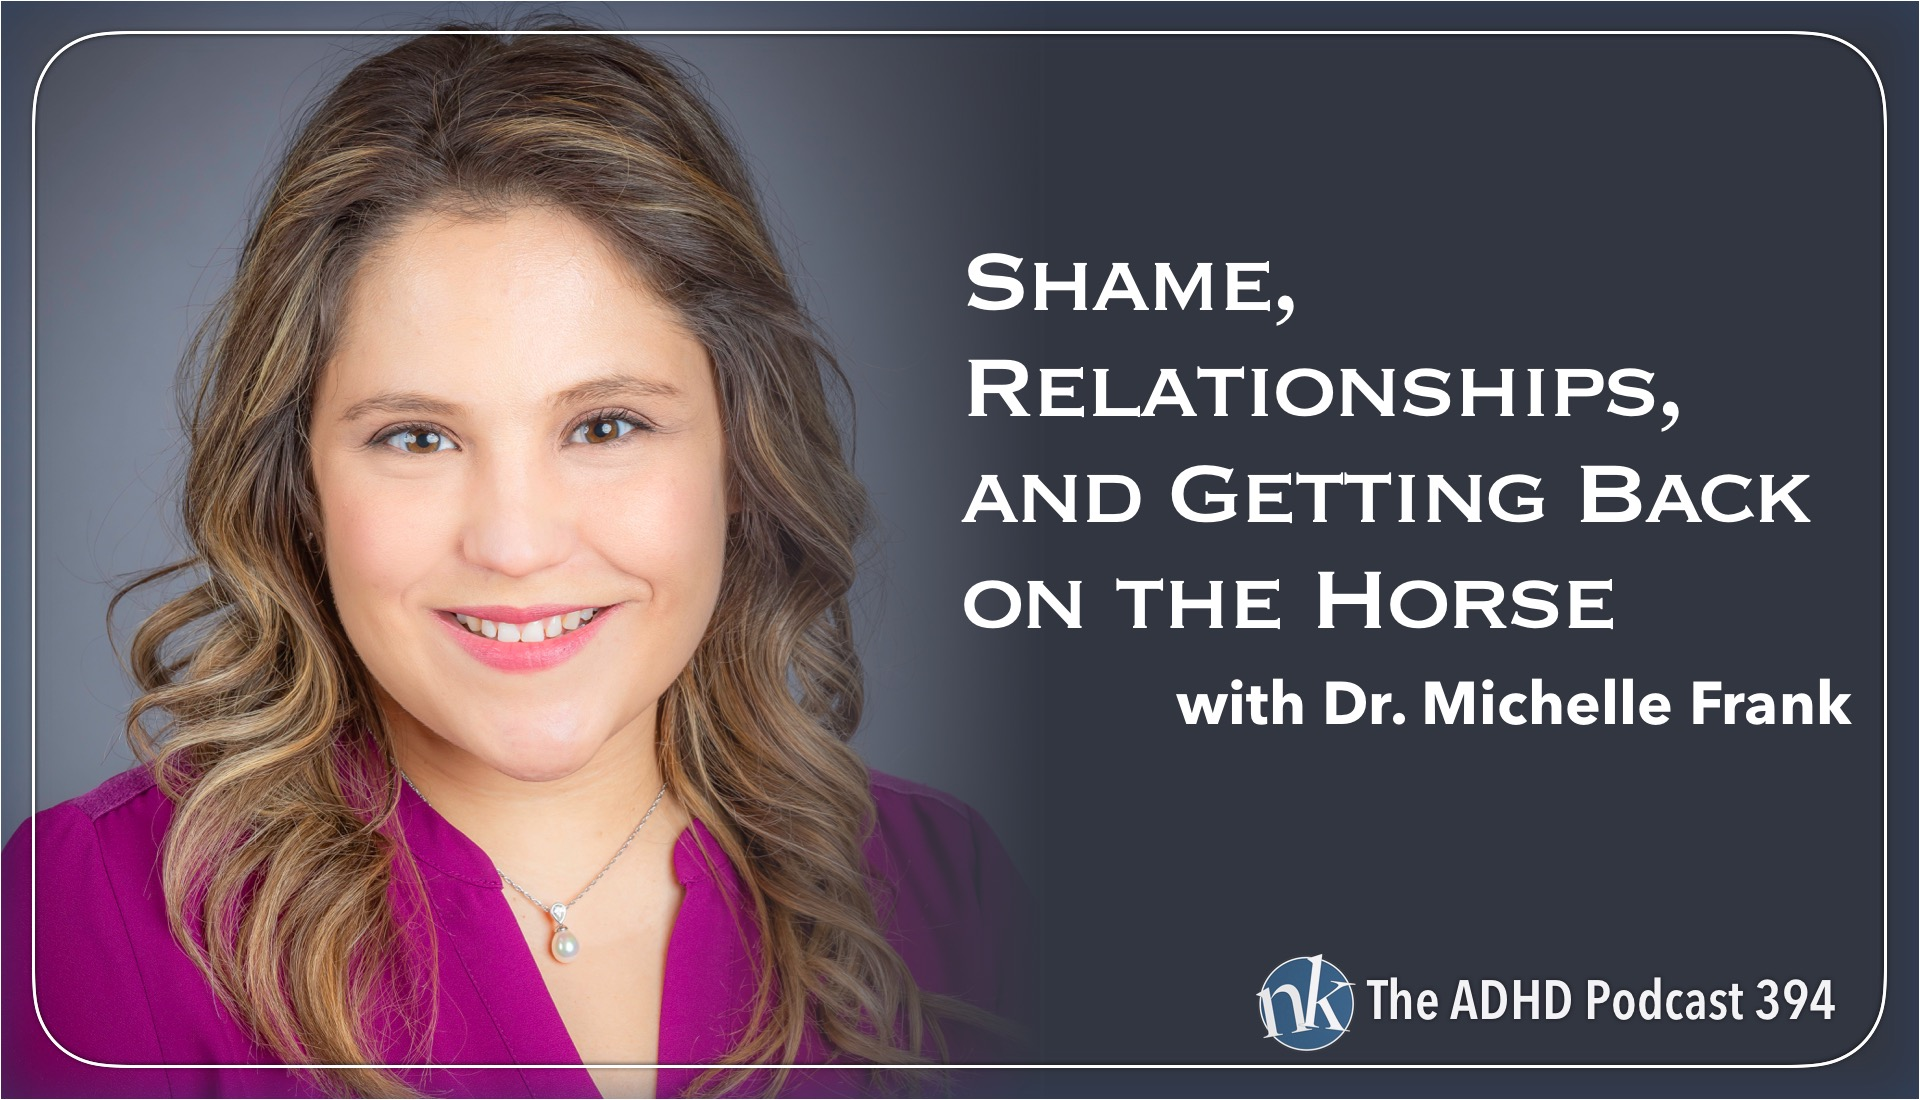 Michelle Frank on The ADHD Podcast